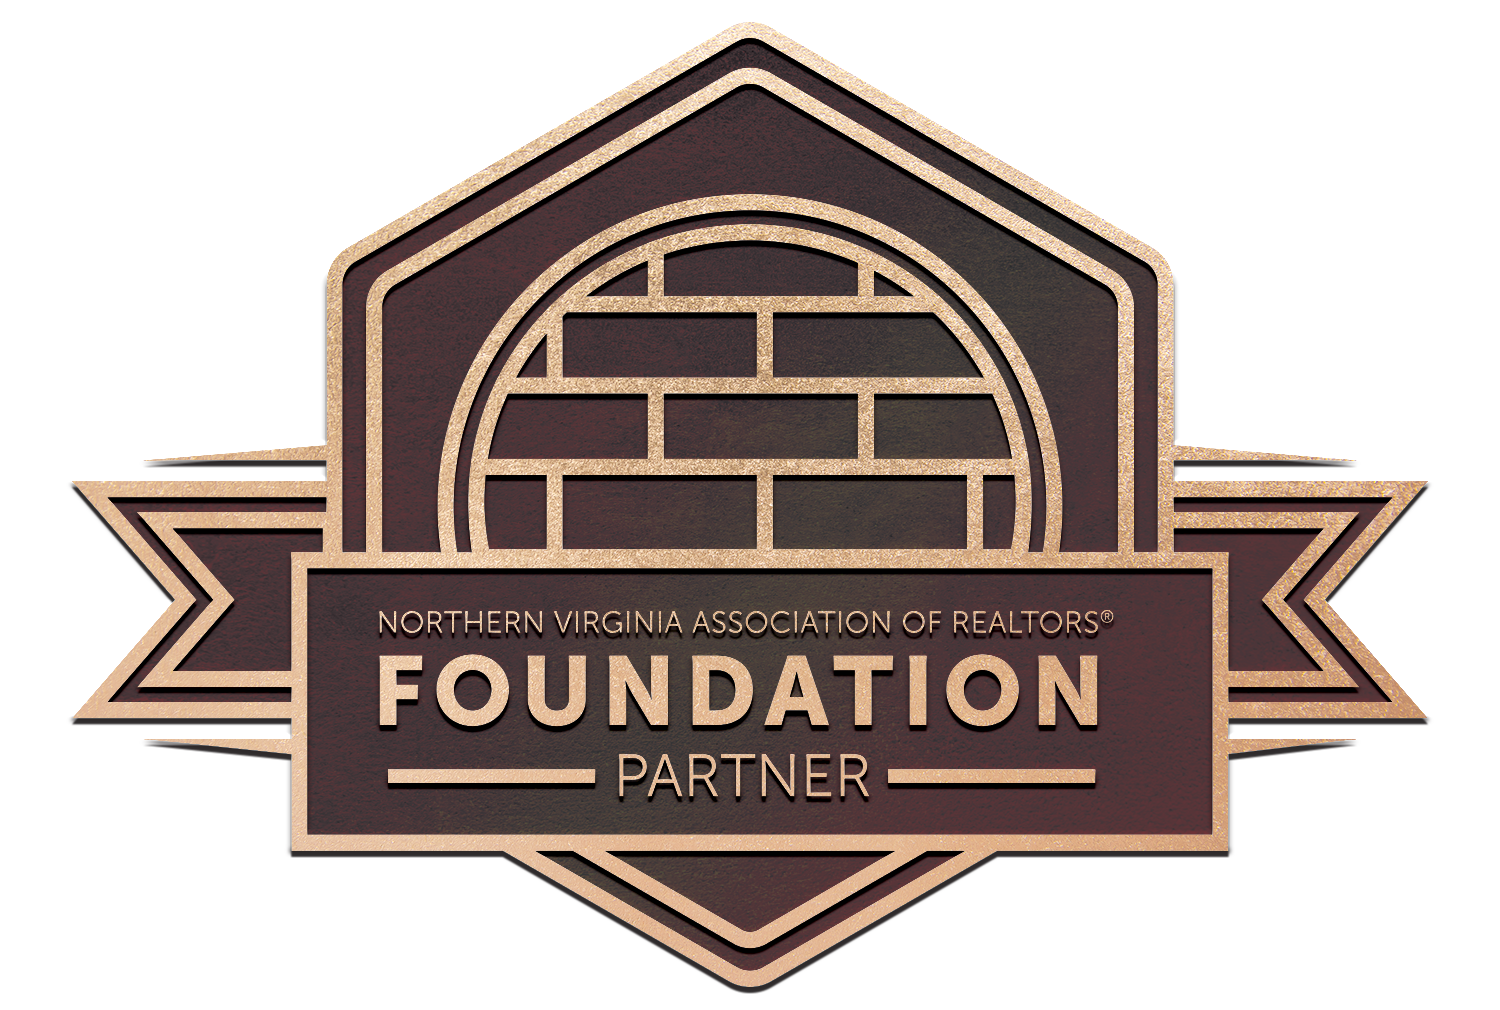 foundation partner logo